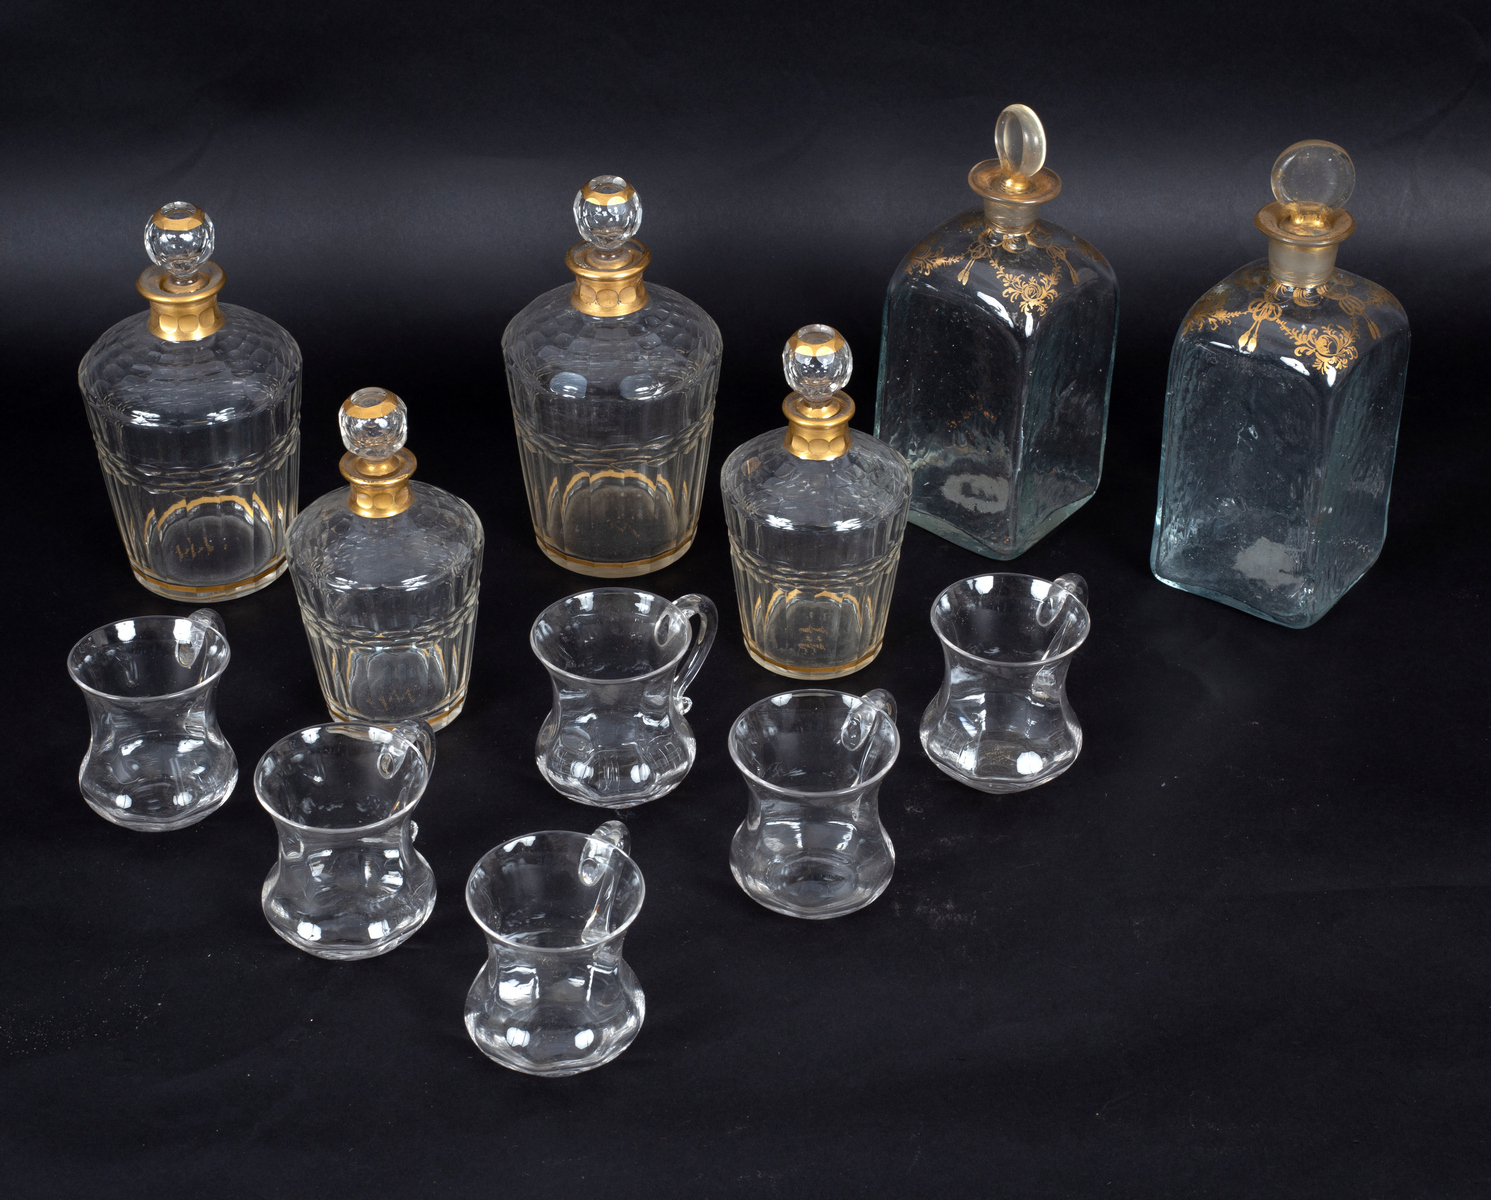 Lot 424 - A set of four decanters and stoppers with gilt collars, marked Daum Nancy, in two sizes,